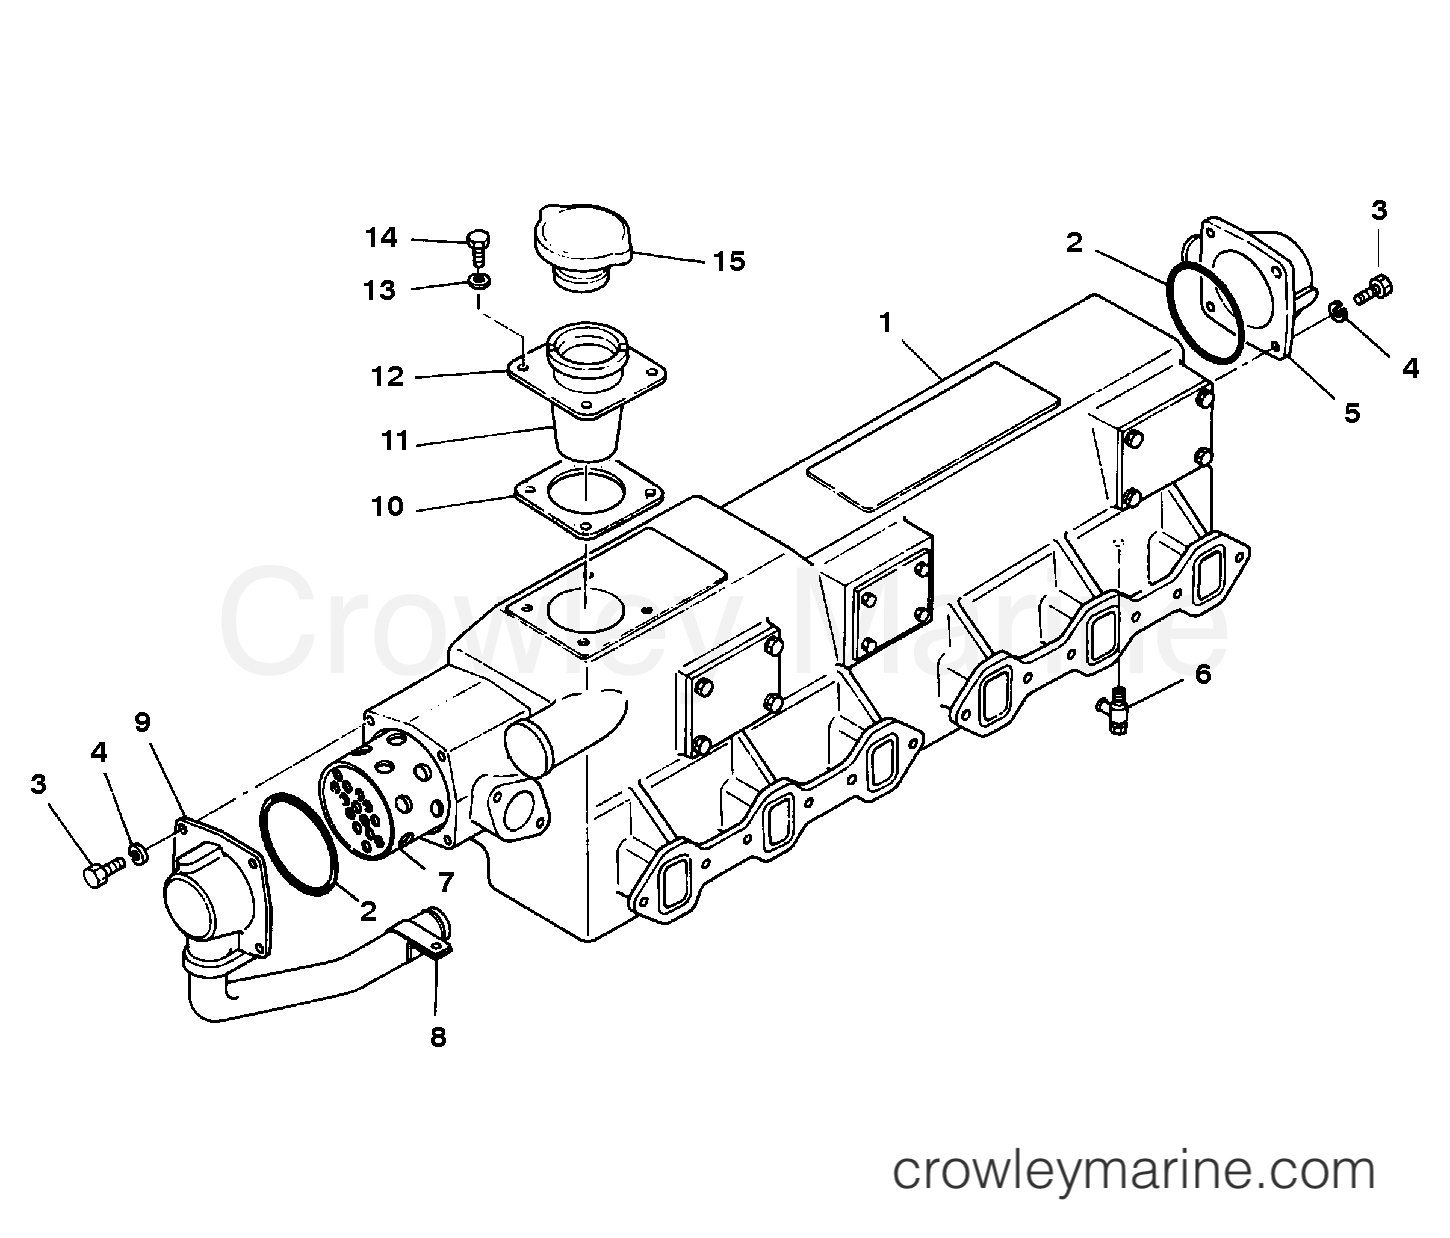 Manifold Assembly Exhaust Serial Range Mercruiser Eh700 175 Hino Engine Diagrams 220hp 393 I L6 All